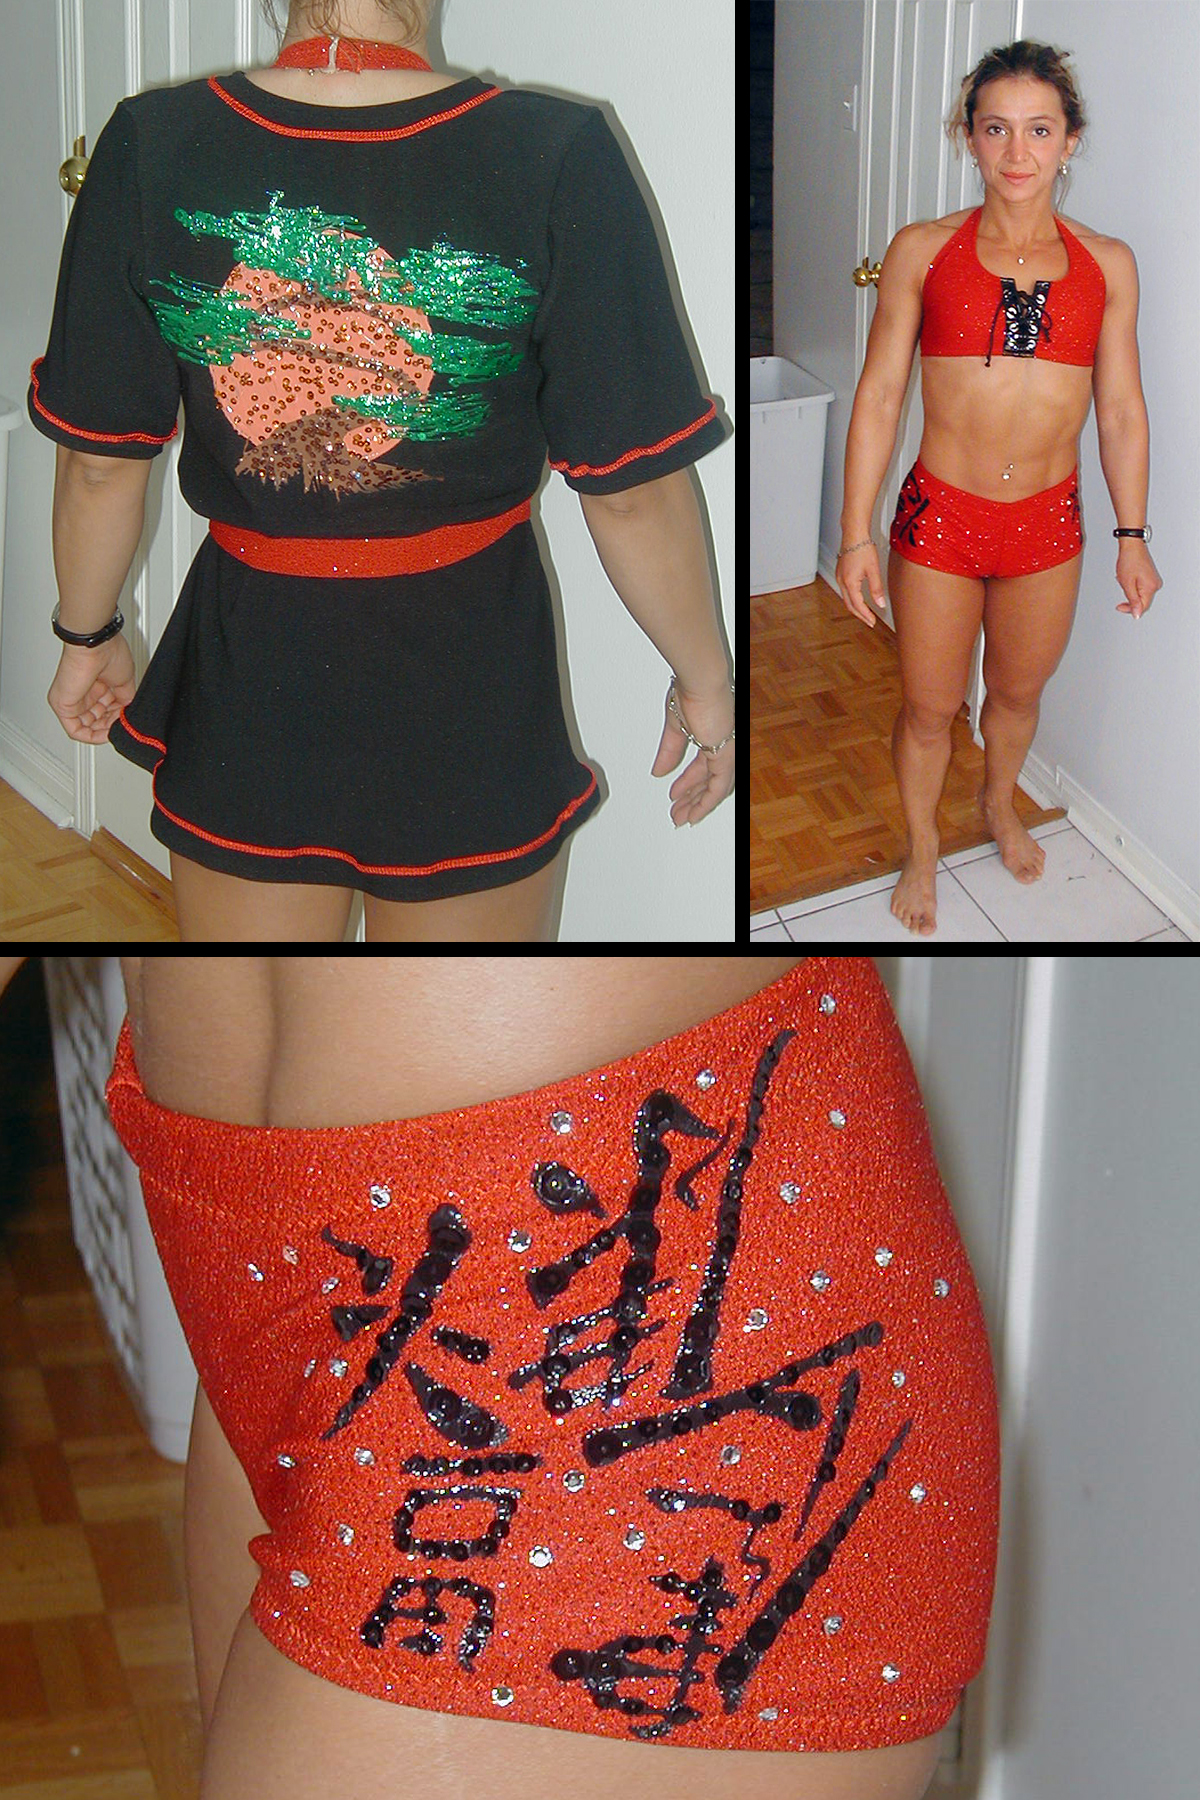 A 3 part compilation image showing a red and black fitness competition outfit.